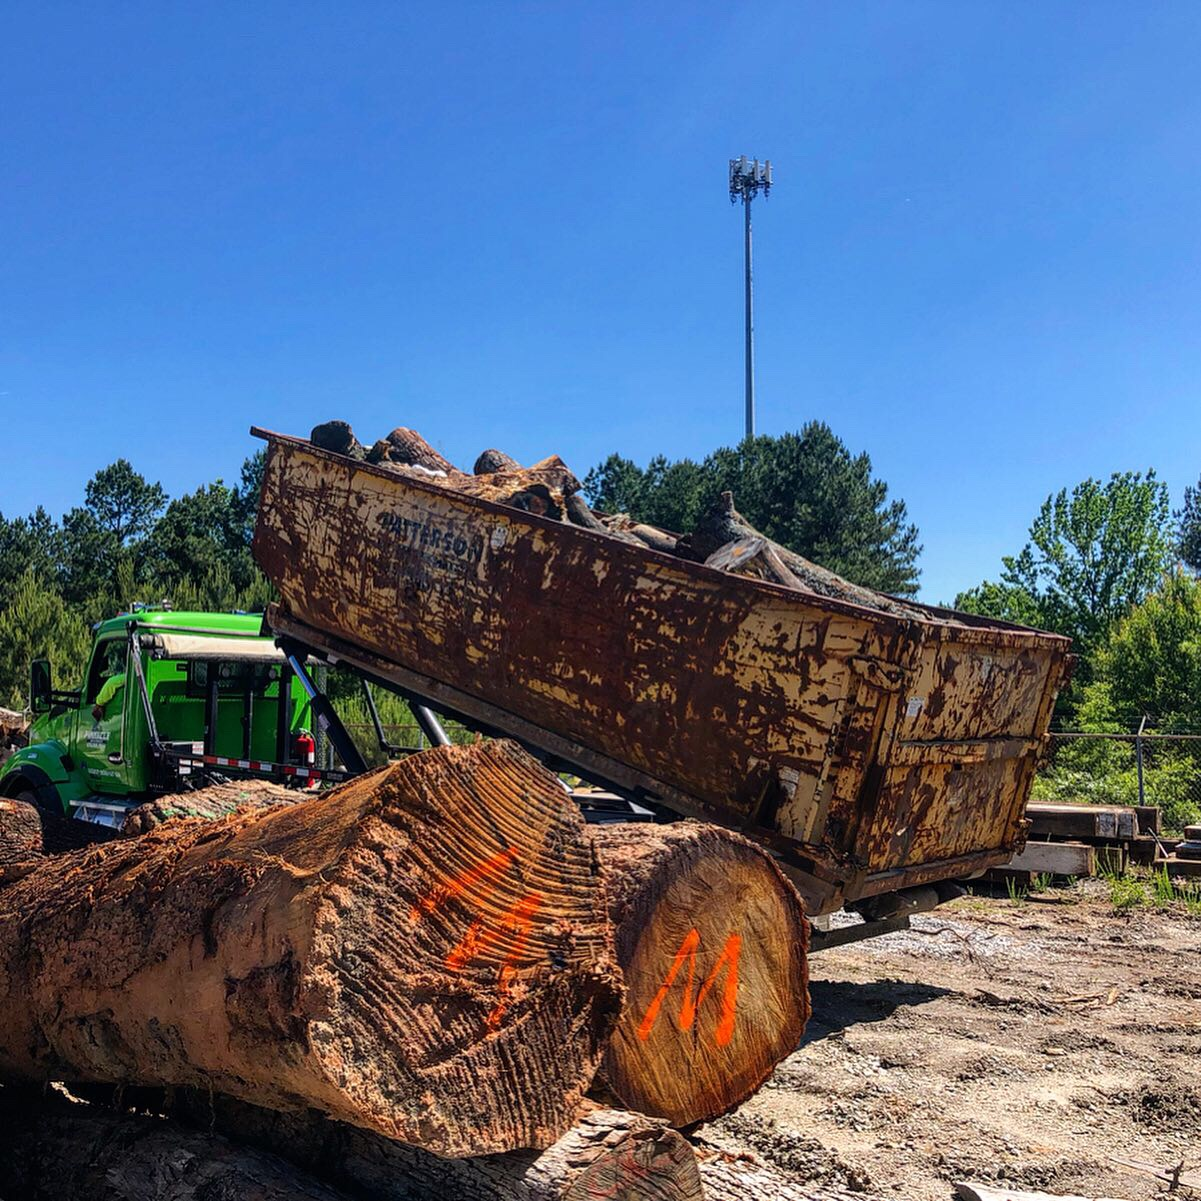 Once logs are unloaded, inventory is rechecked and Eutree's Chief Sawyer outlines a milling plan for each log. Eutree maintains a strict chain of custody to guarantee customers always receive the same lumber from their tees.